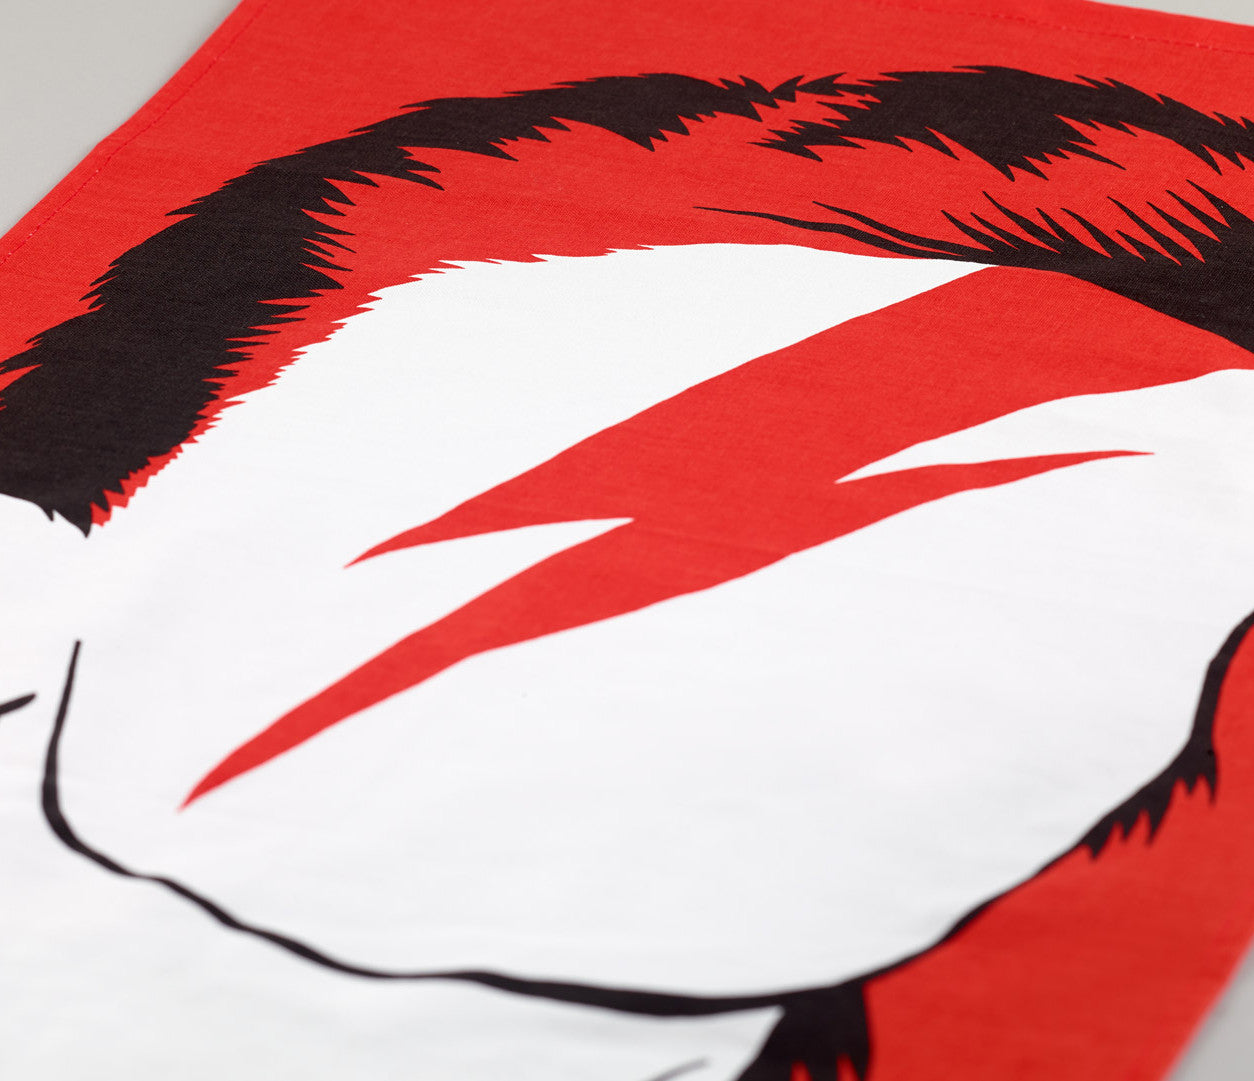 'David Bowie/Aladdin Sane' Tea Towel